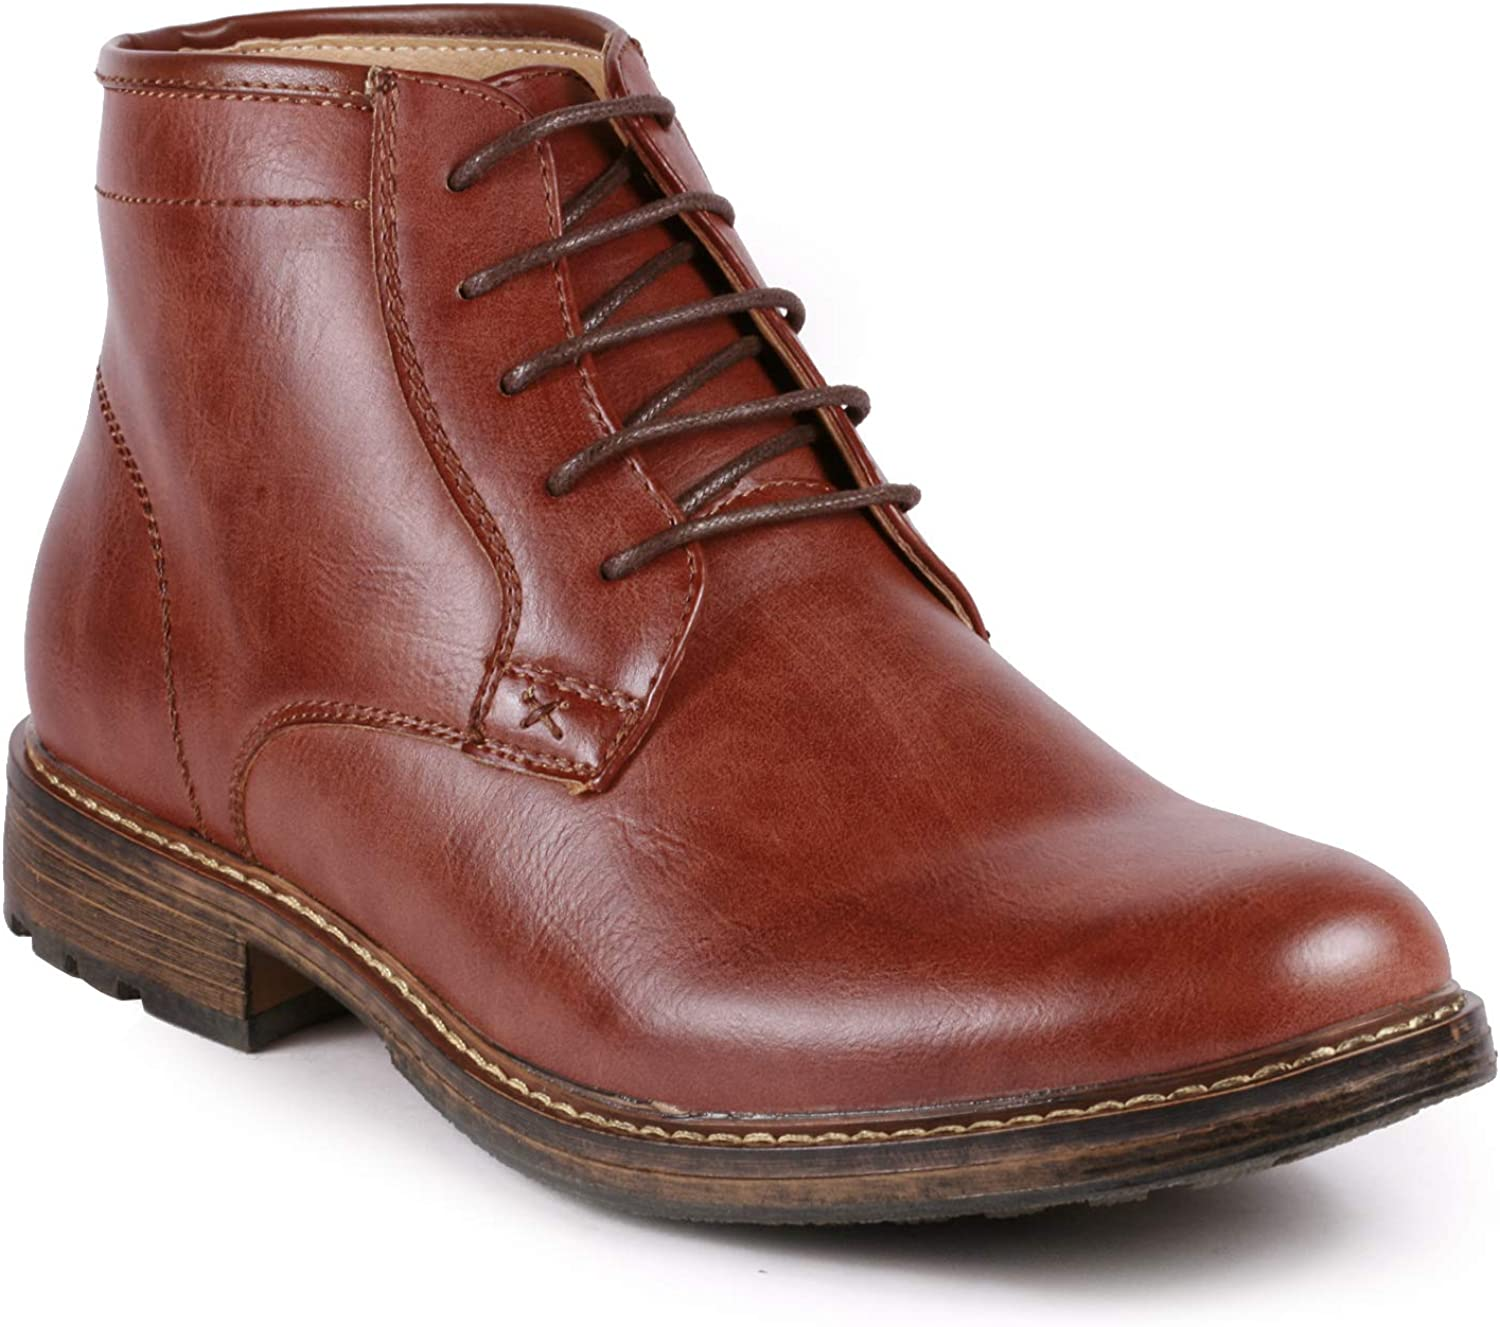 Metrocharm MC150 Men's Lace Up Casual Fashion Ankle Chukka Boots